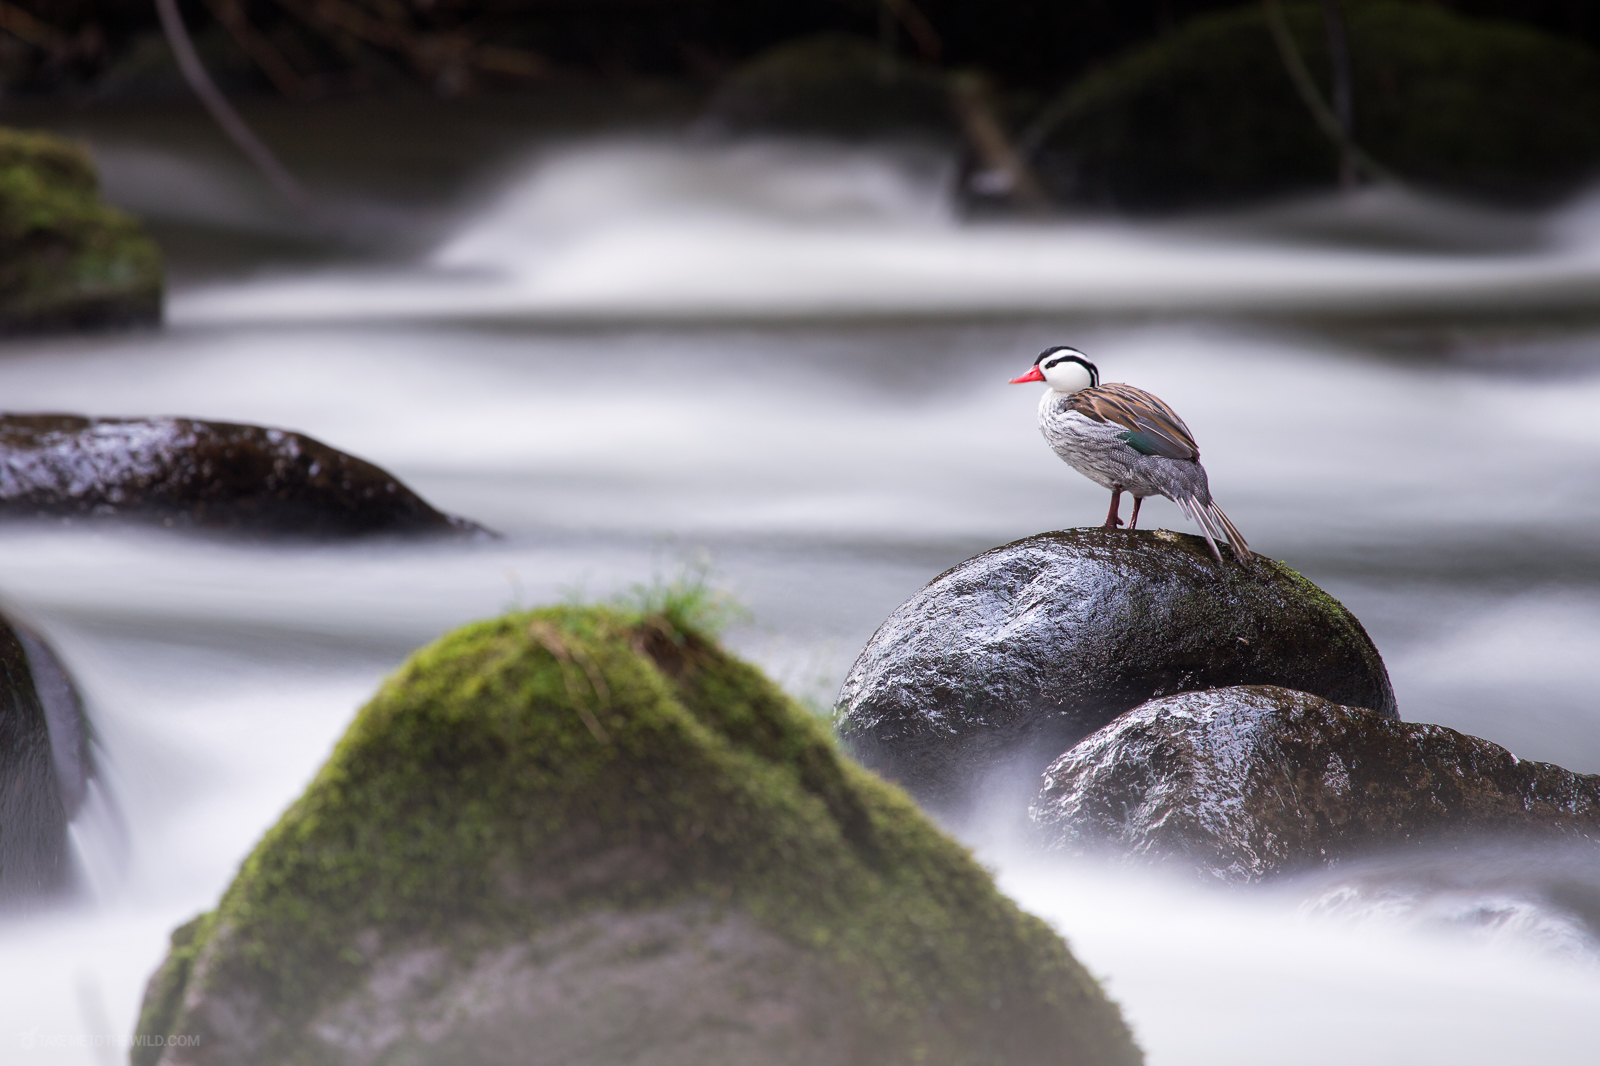 Torrent duck (Merganetta armata) male standing over a rock in the last hours of the day at the highlands of Colombia